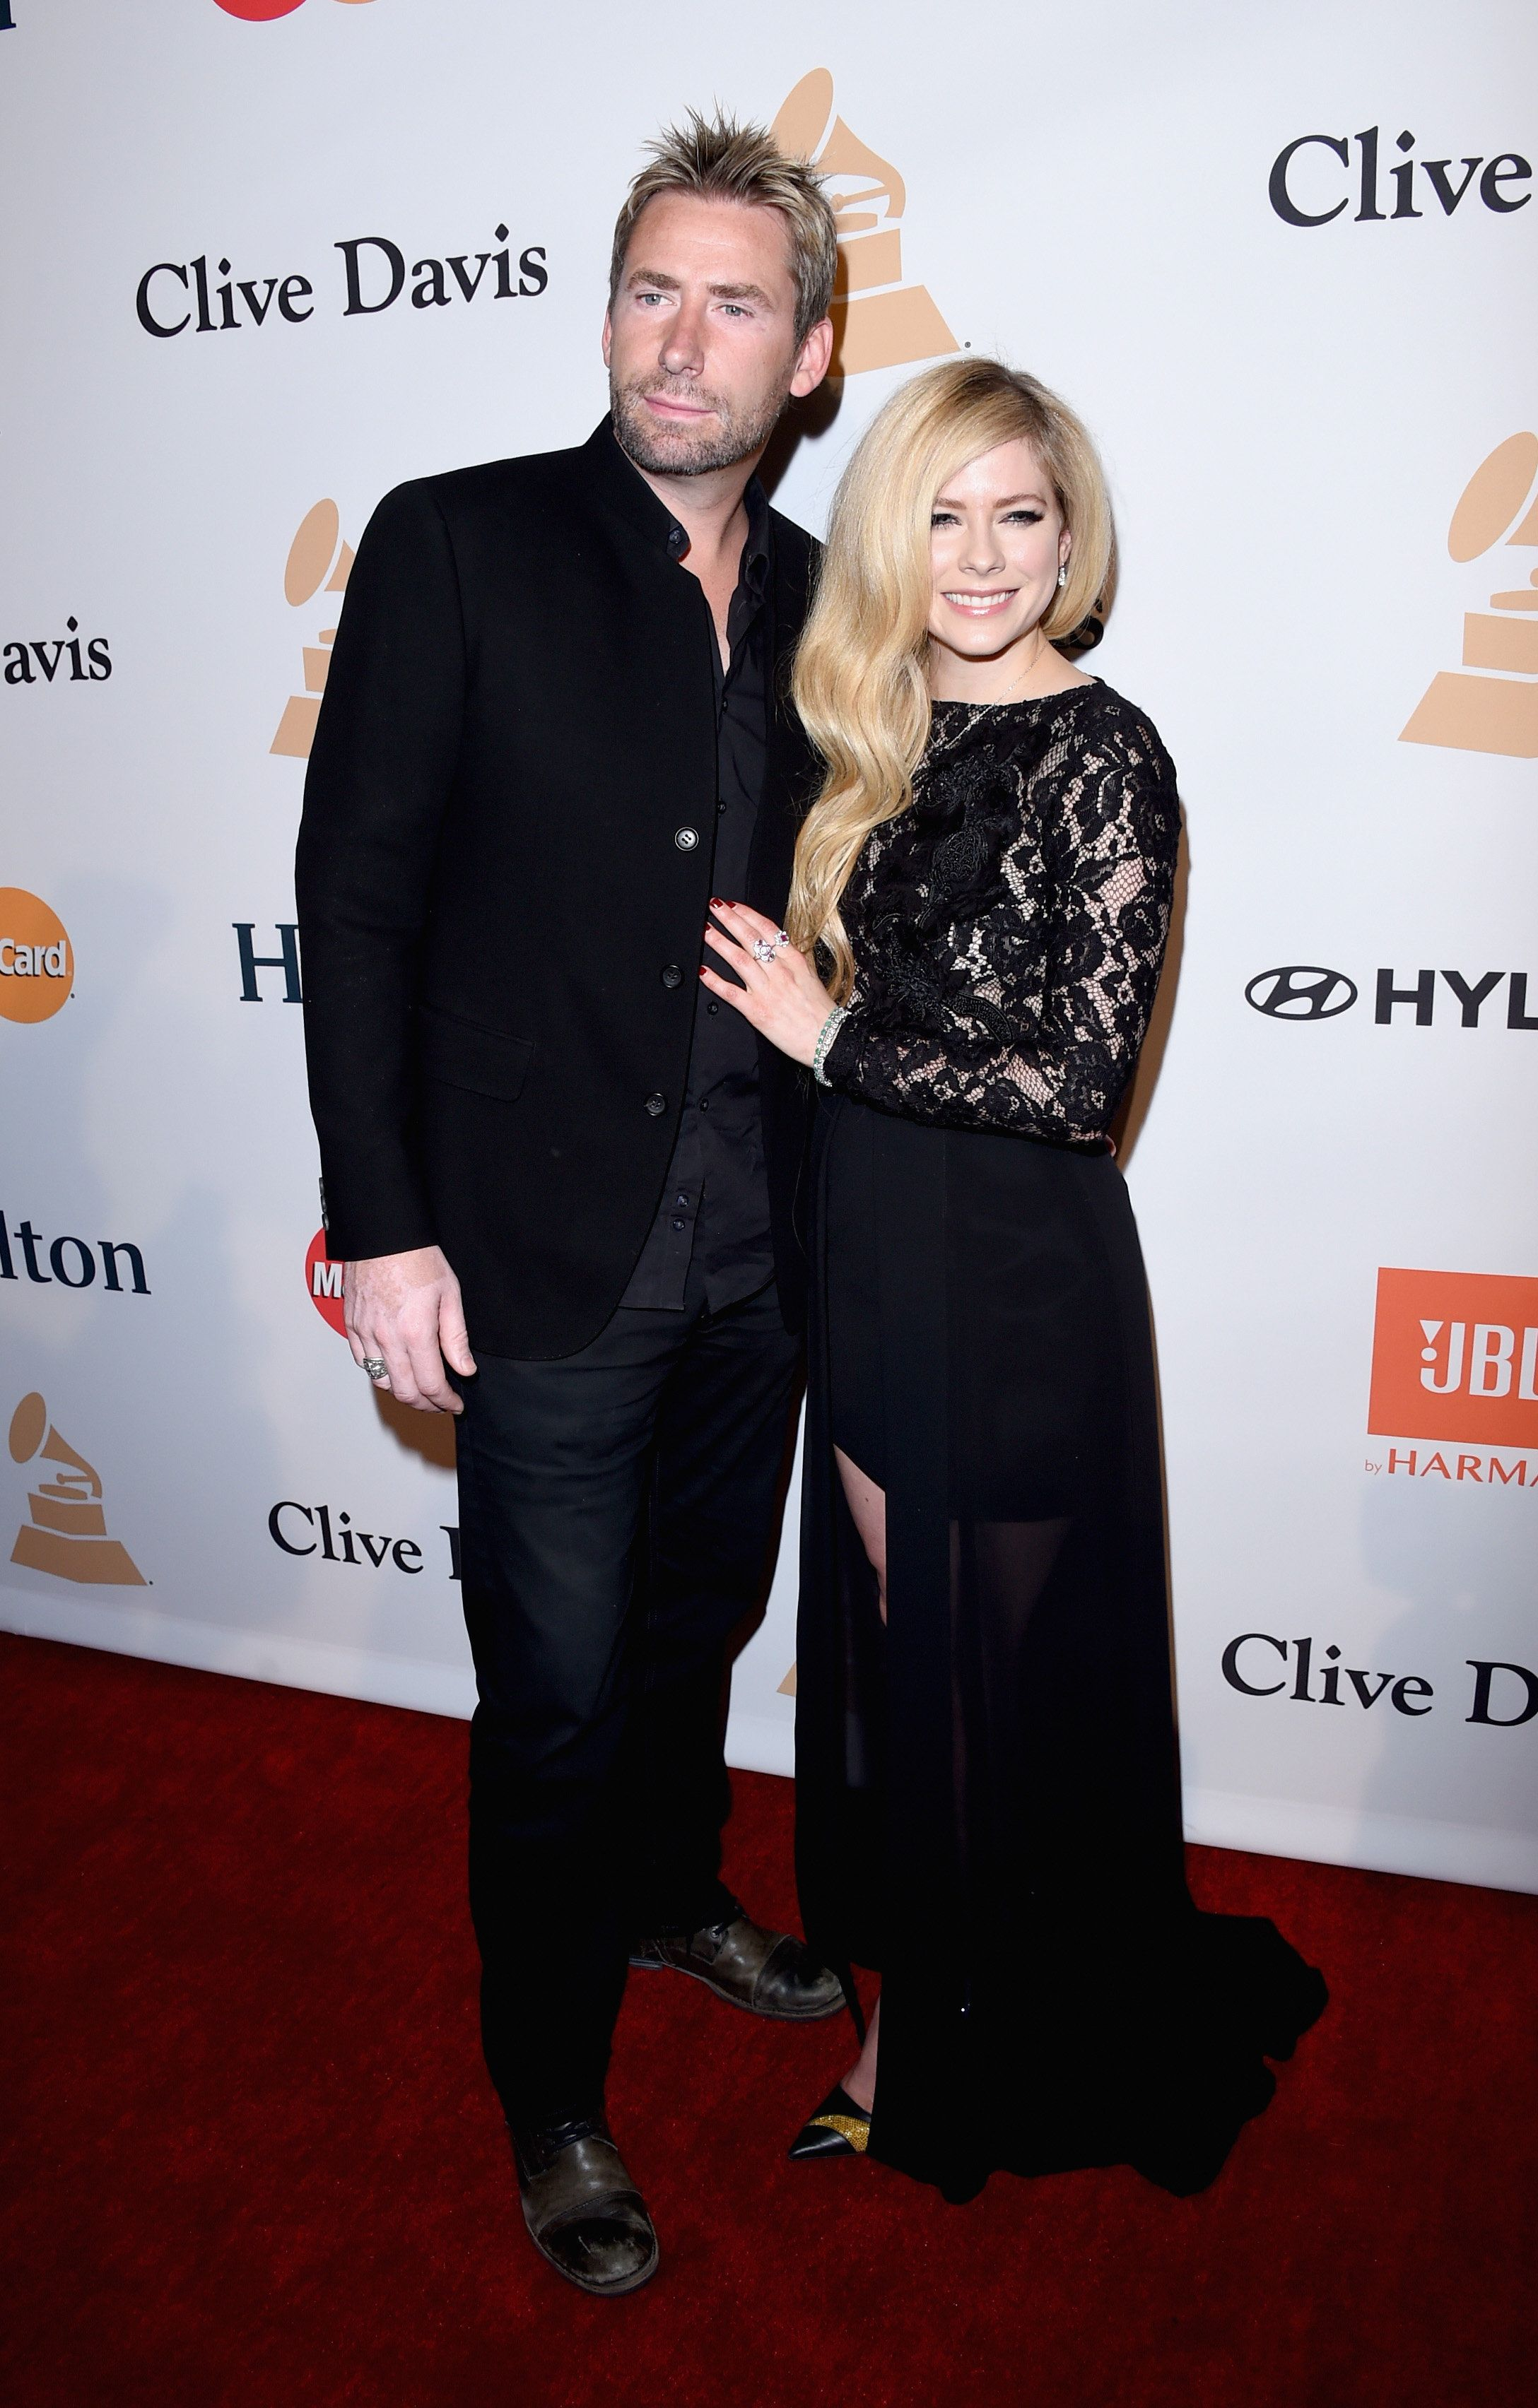 BEVERLY HILLS, CA - FEBRUARY 14:  Recording artists Chad Kroeger of Nickelback (L) and Avril Lavigne attend the 2016 Pre-GRAMMY Gala and Salute to Industry Icons honoring Irving Azoff at The Beverly Hilton Hotel on February 14, 2016 in Beverly Hills, California.  (Photo by Jason Merritt/WireImage)